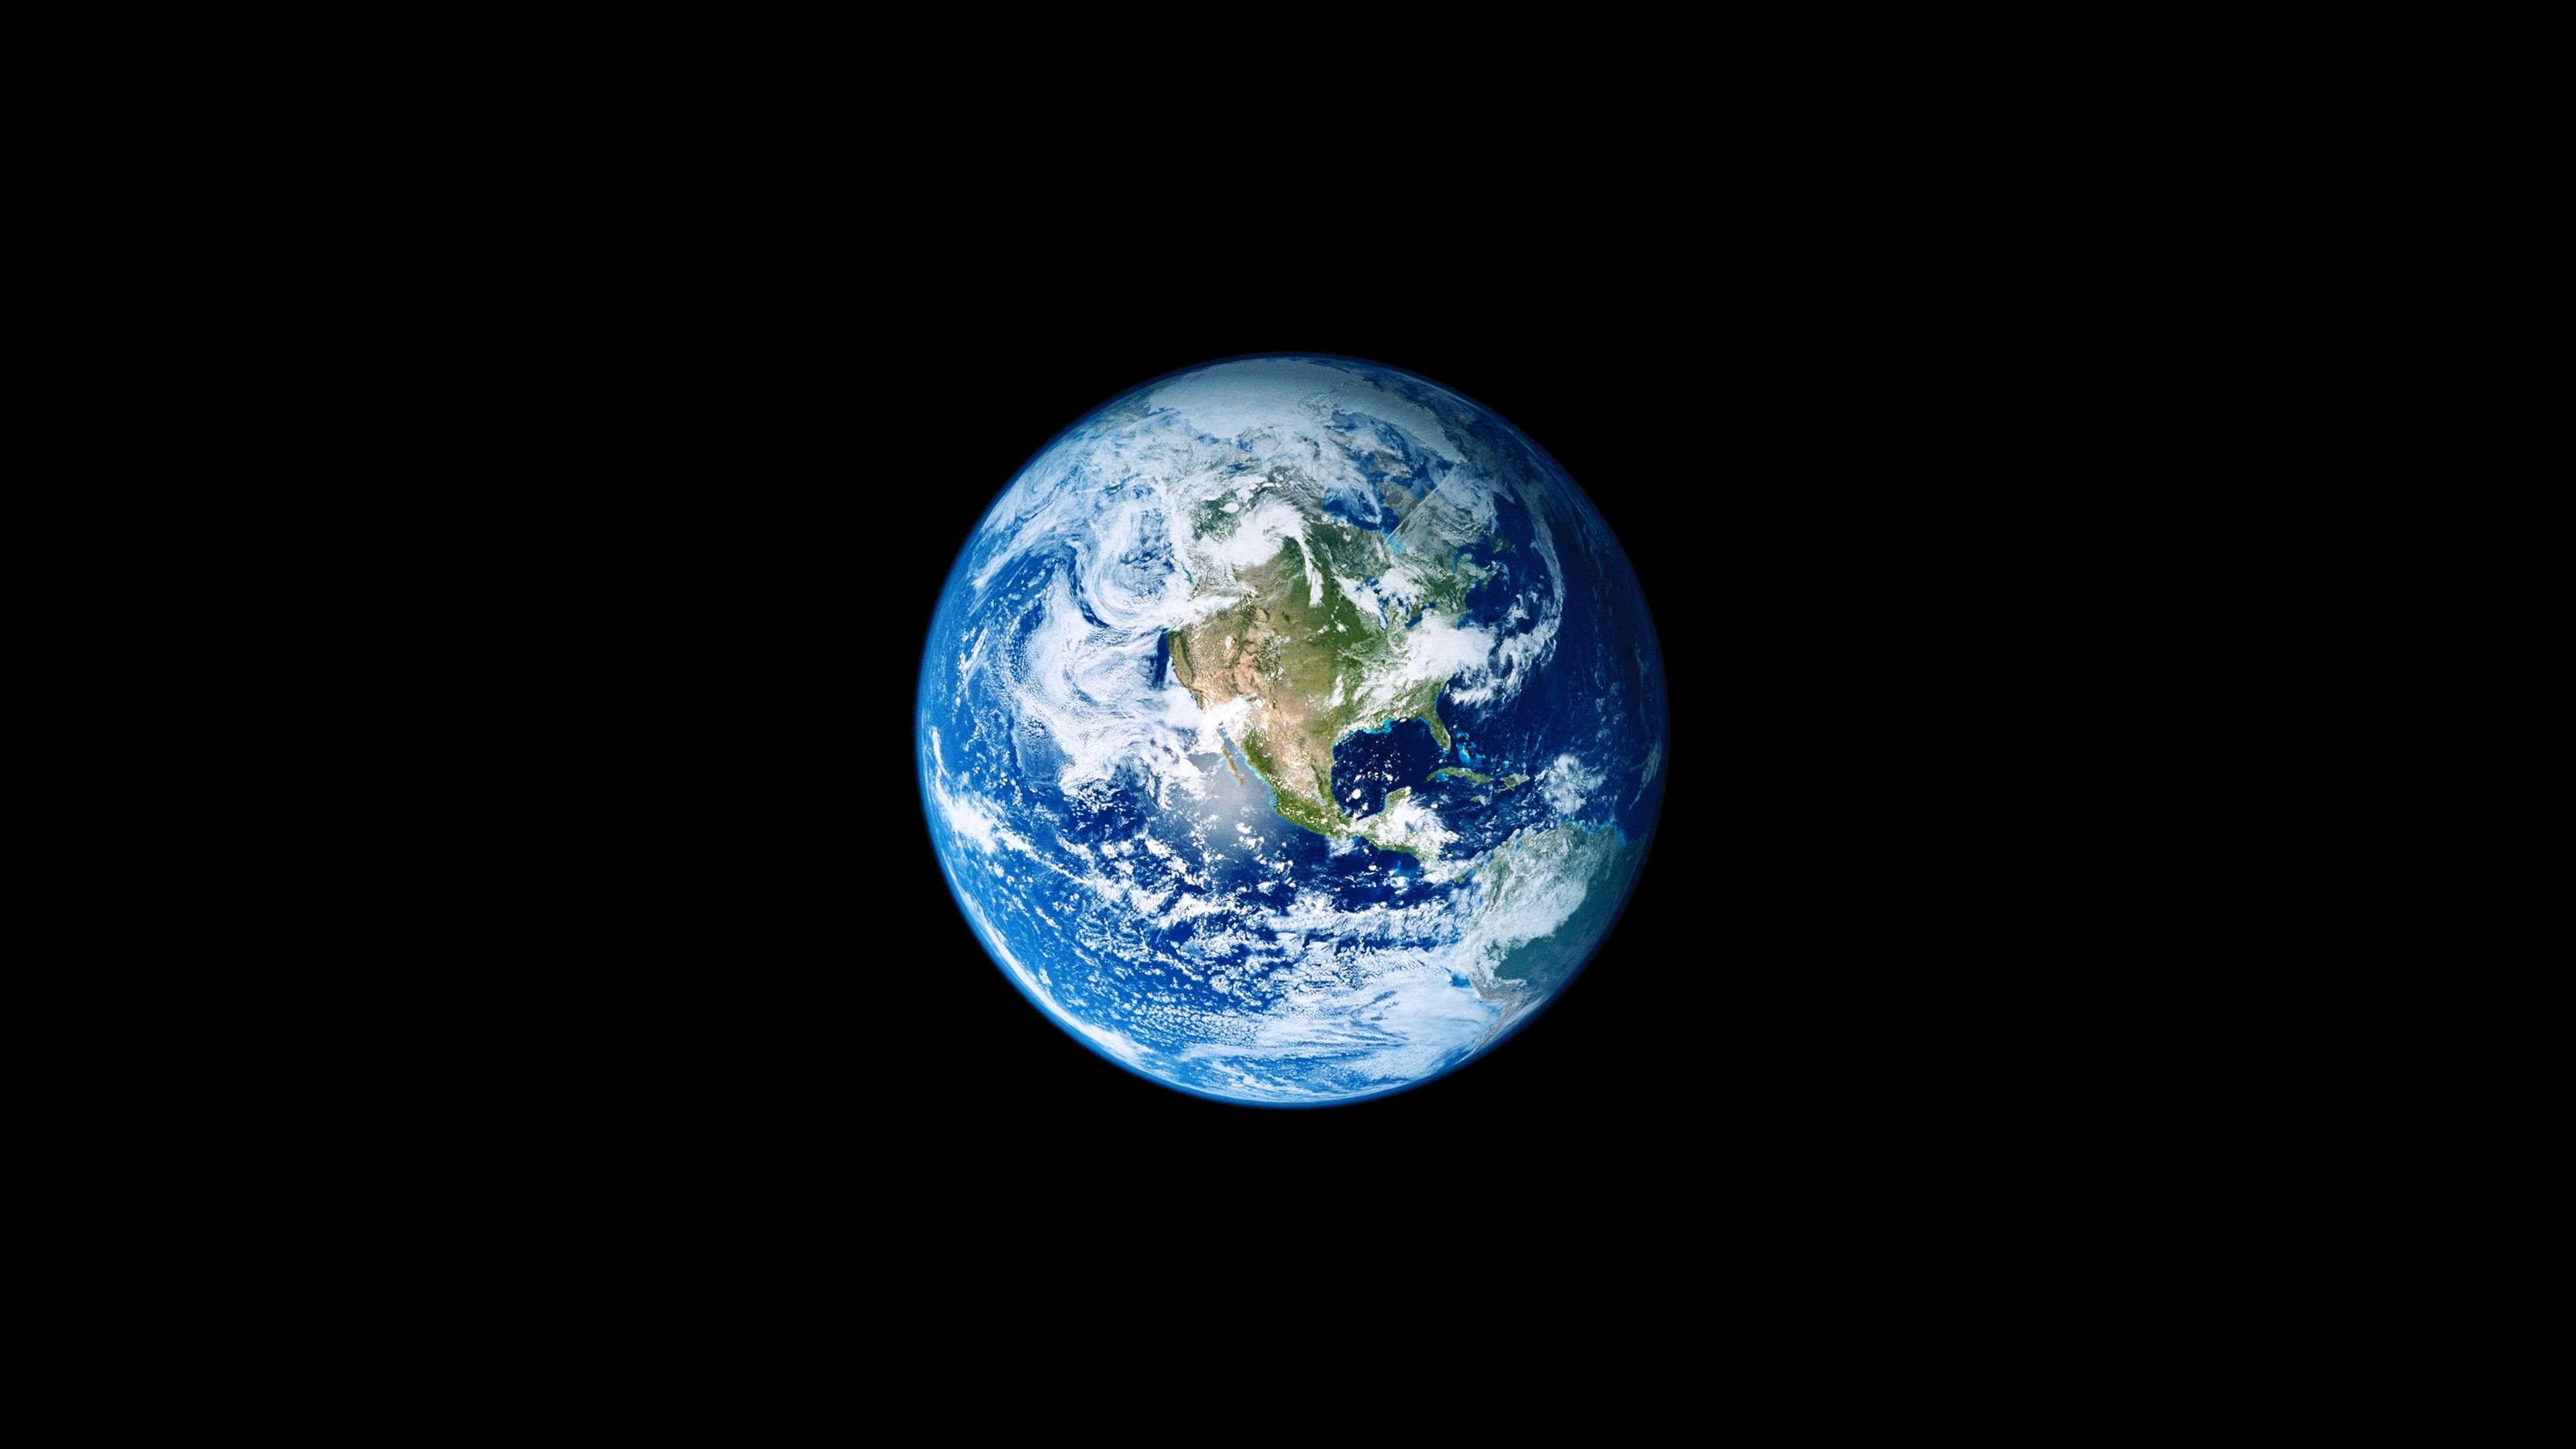 4K Earth Wallpapers   Top 4K Earth Backgrounds   WallpaperAccess 3840x2160